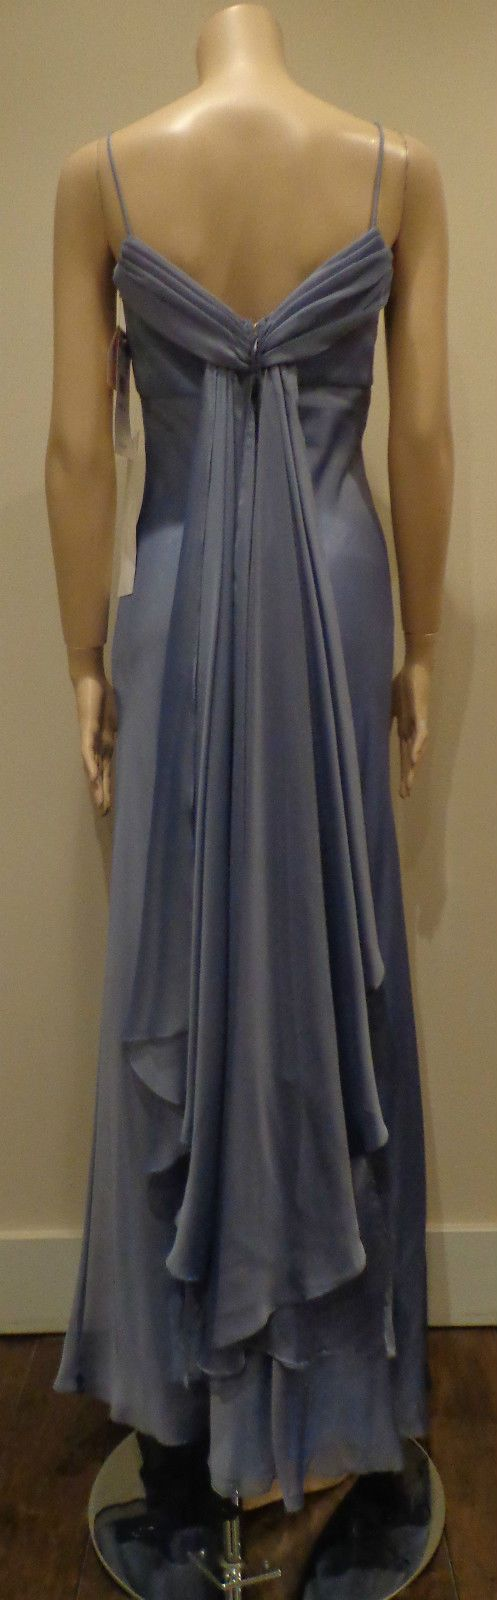 Cool awesome betsy u adam by linda bernell lavender formal gown prom